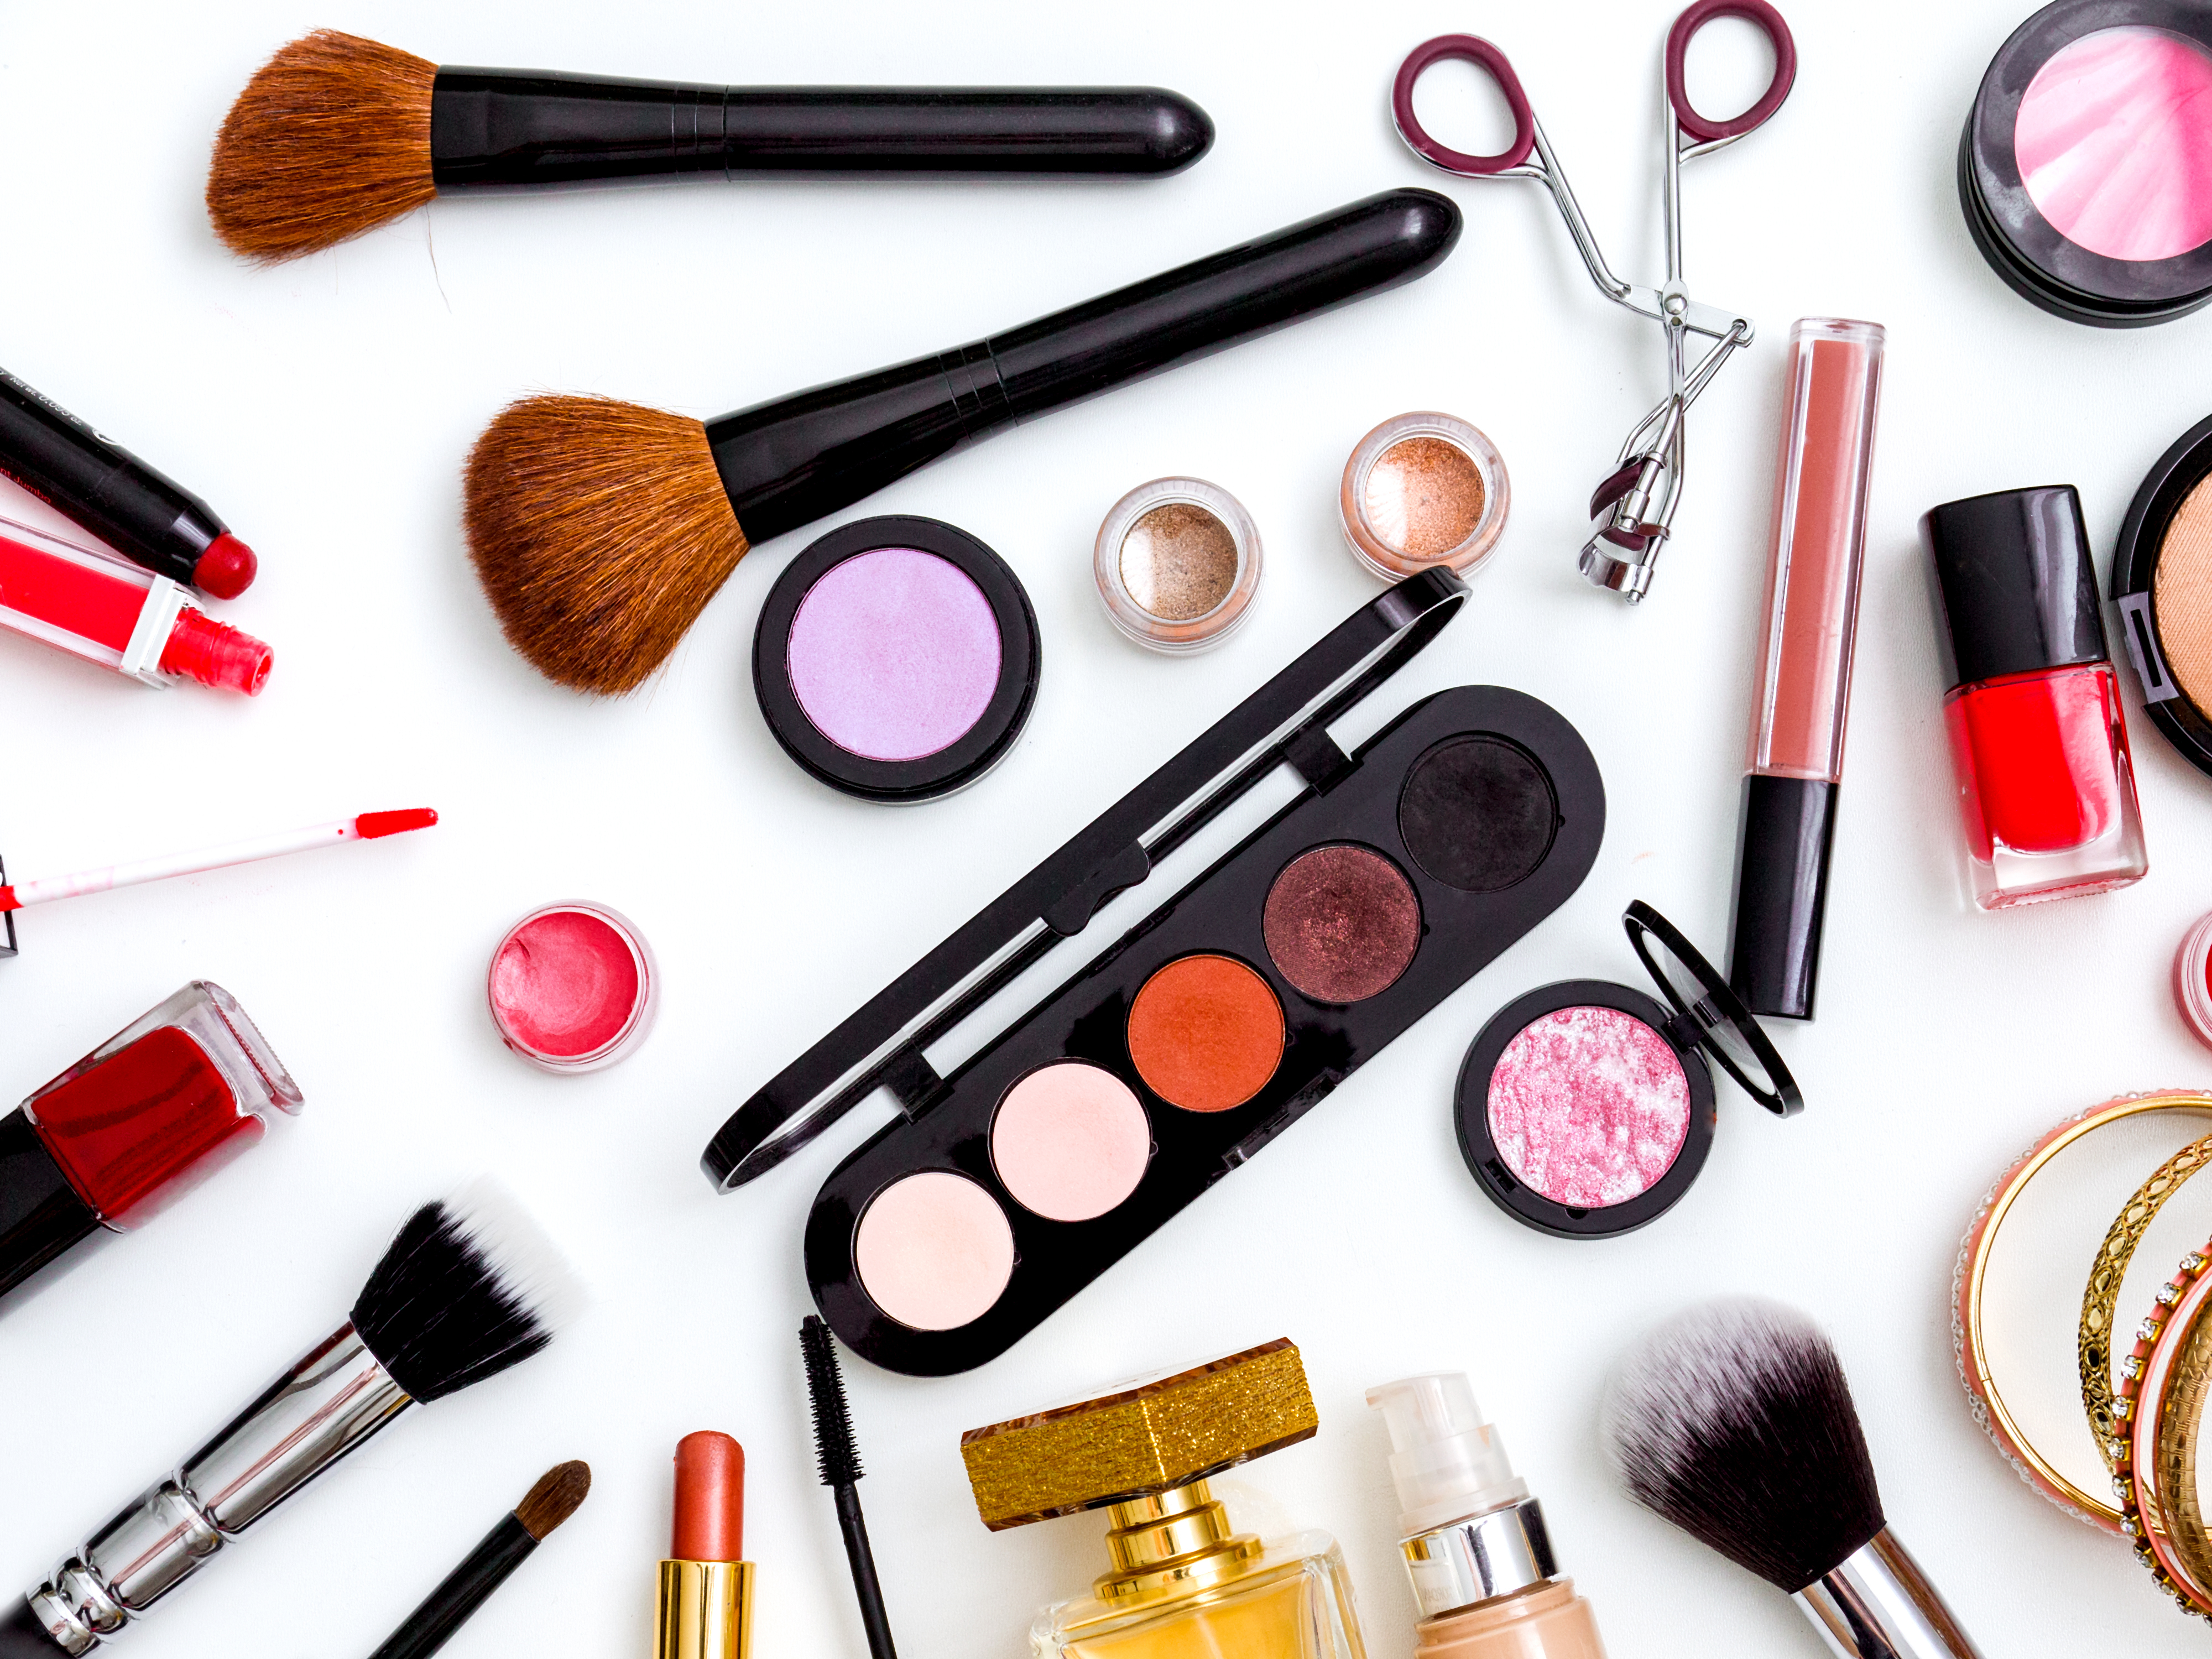 cosmetics top view on a white table. Wor